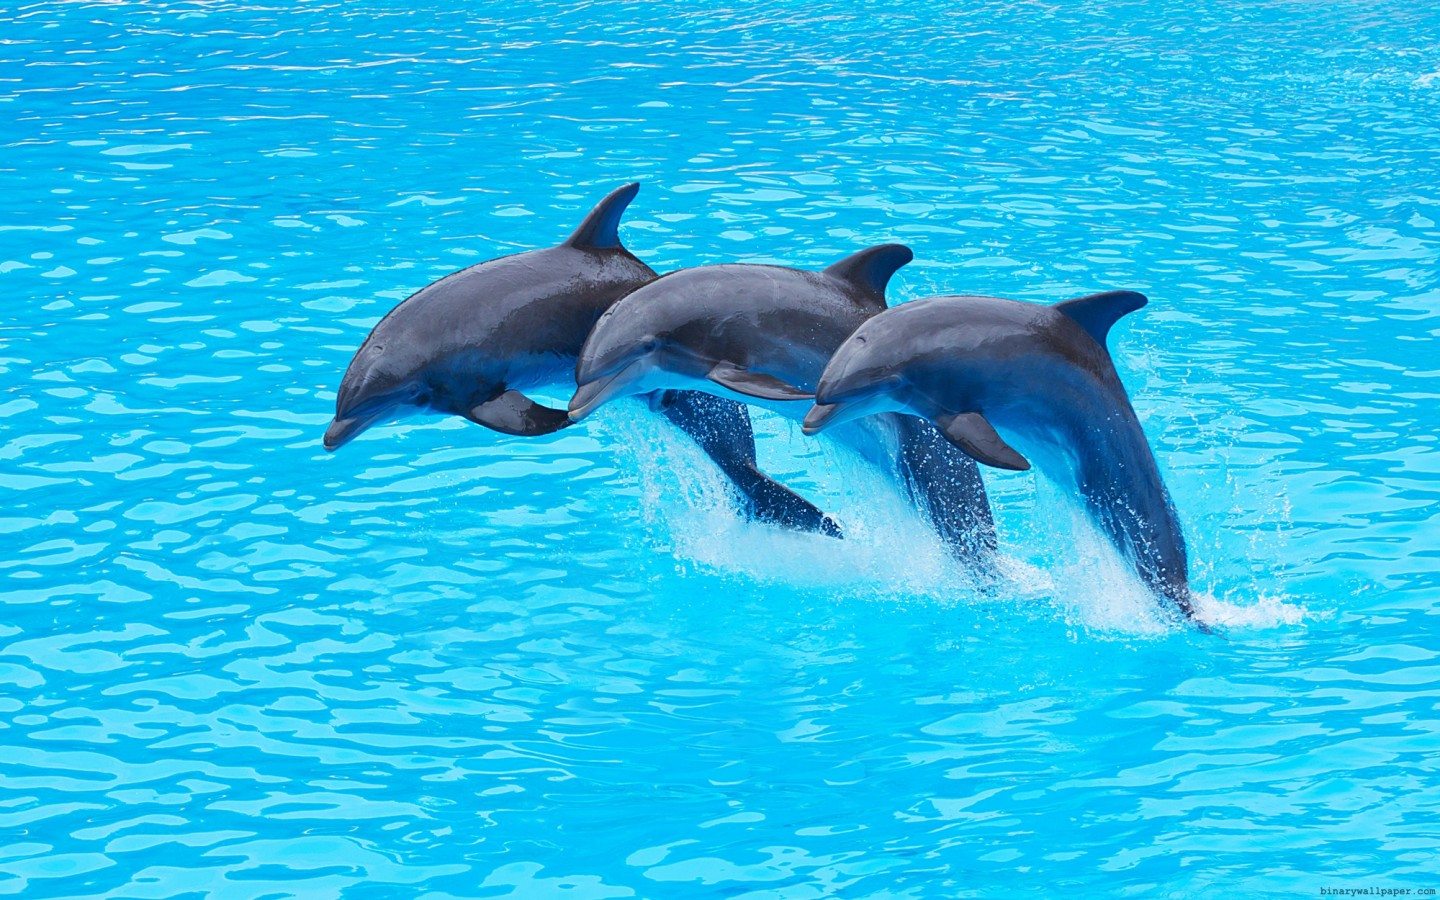 High Resolution Wallpaper Of 3 Dolphins PaperPull 1440x900